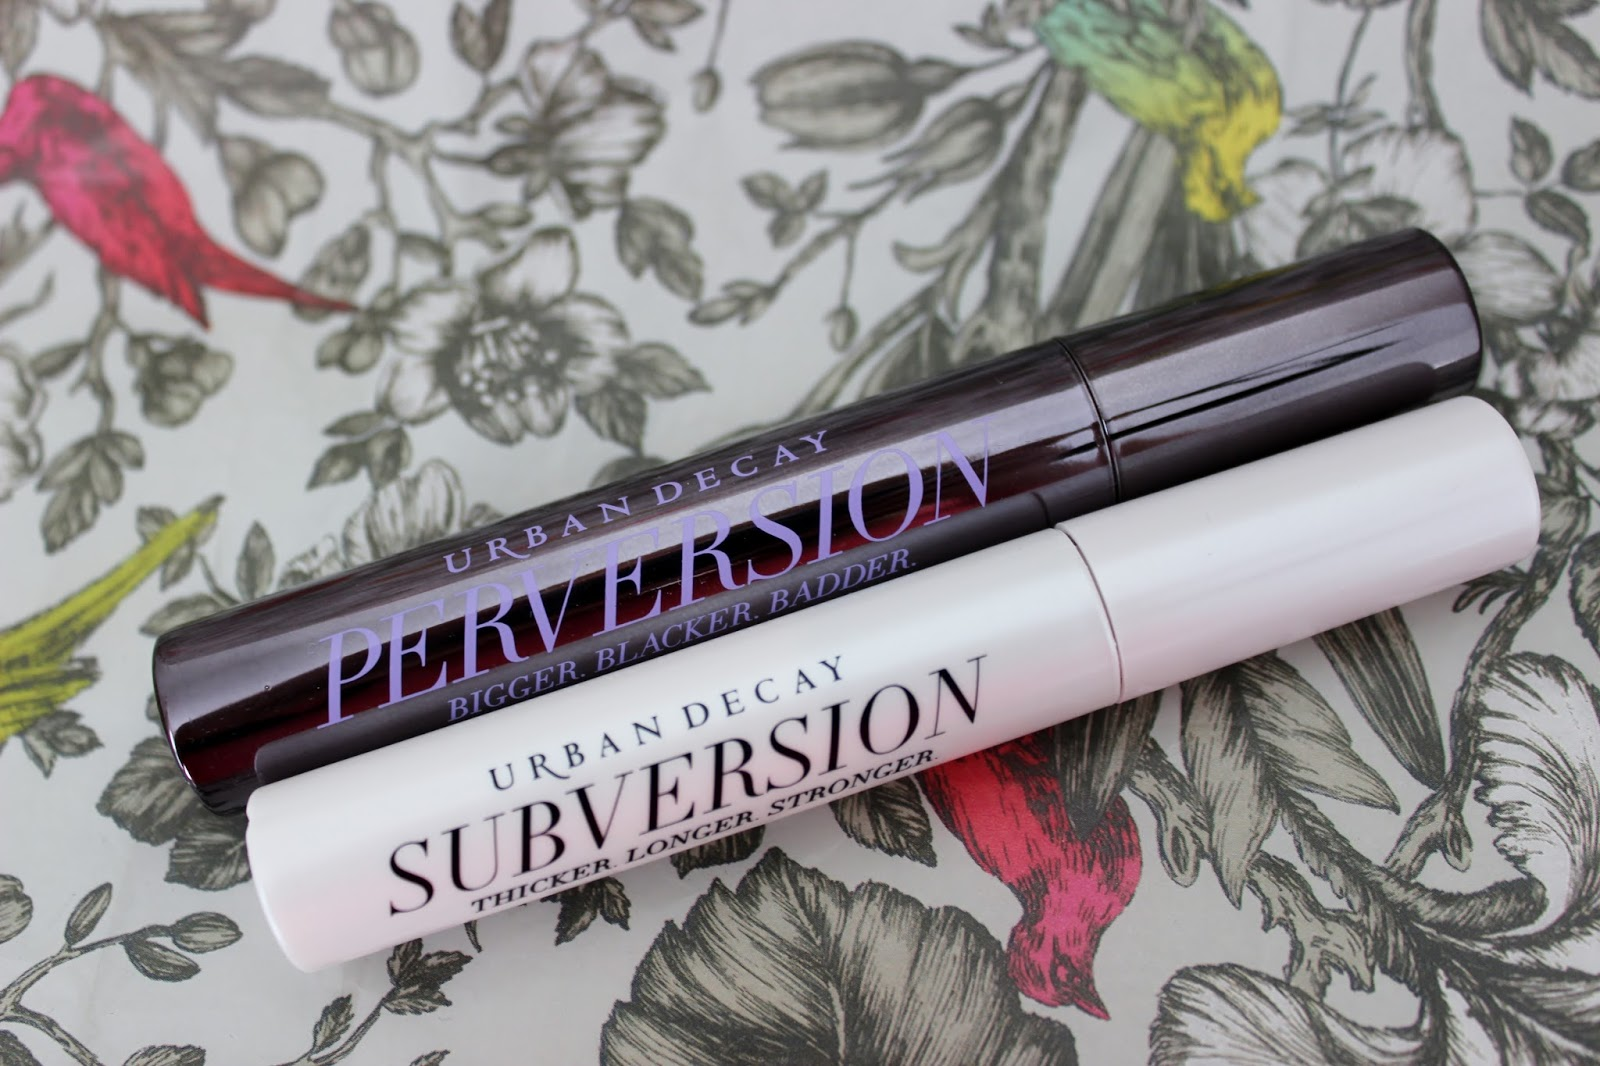 Urban Decay Perversion mascara and Subversion lash primer